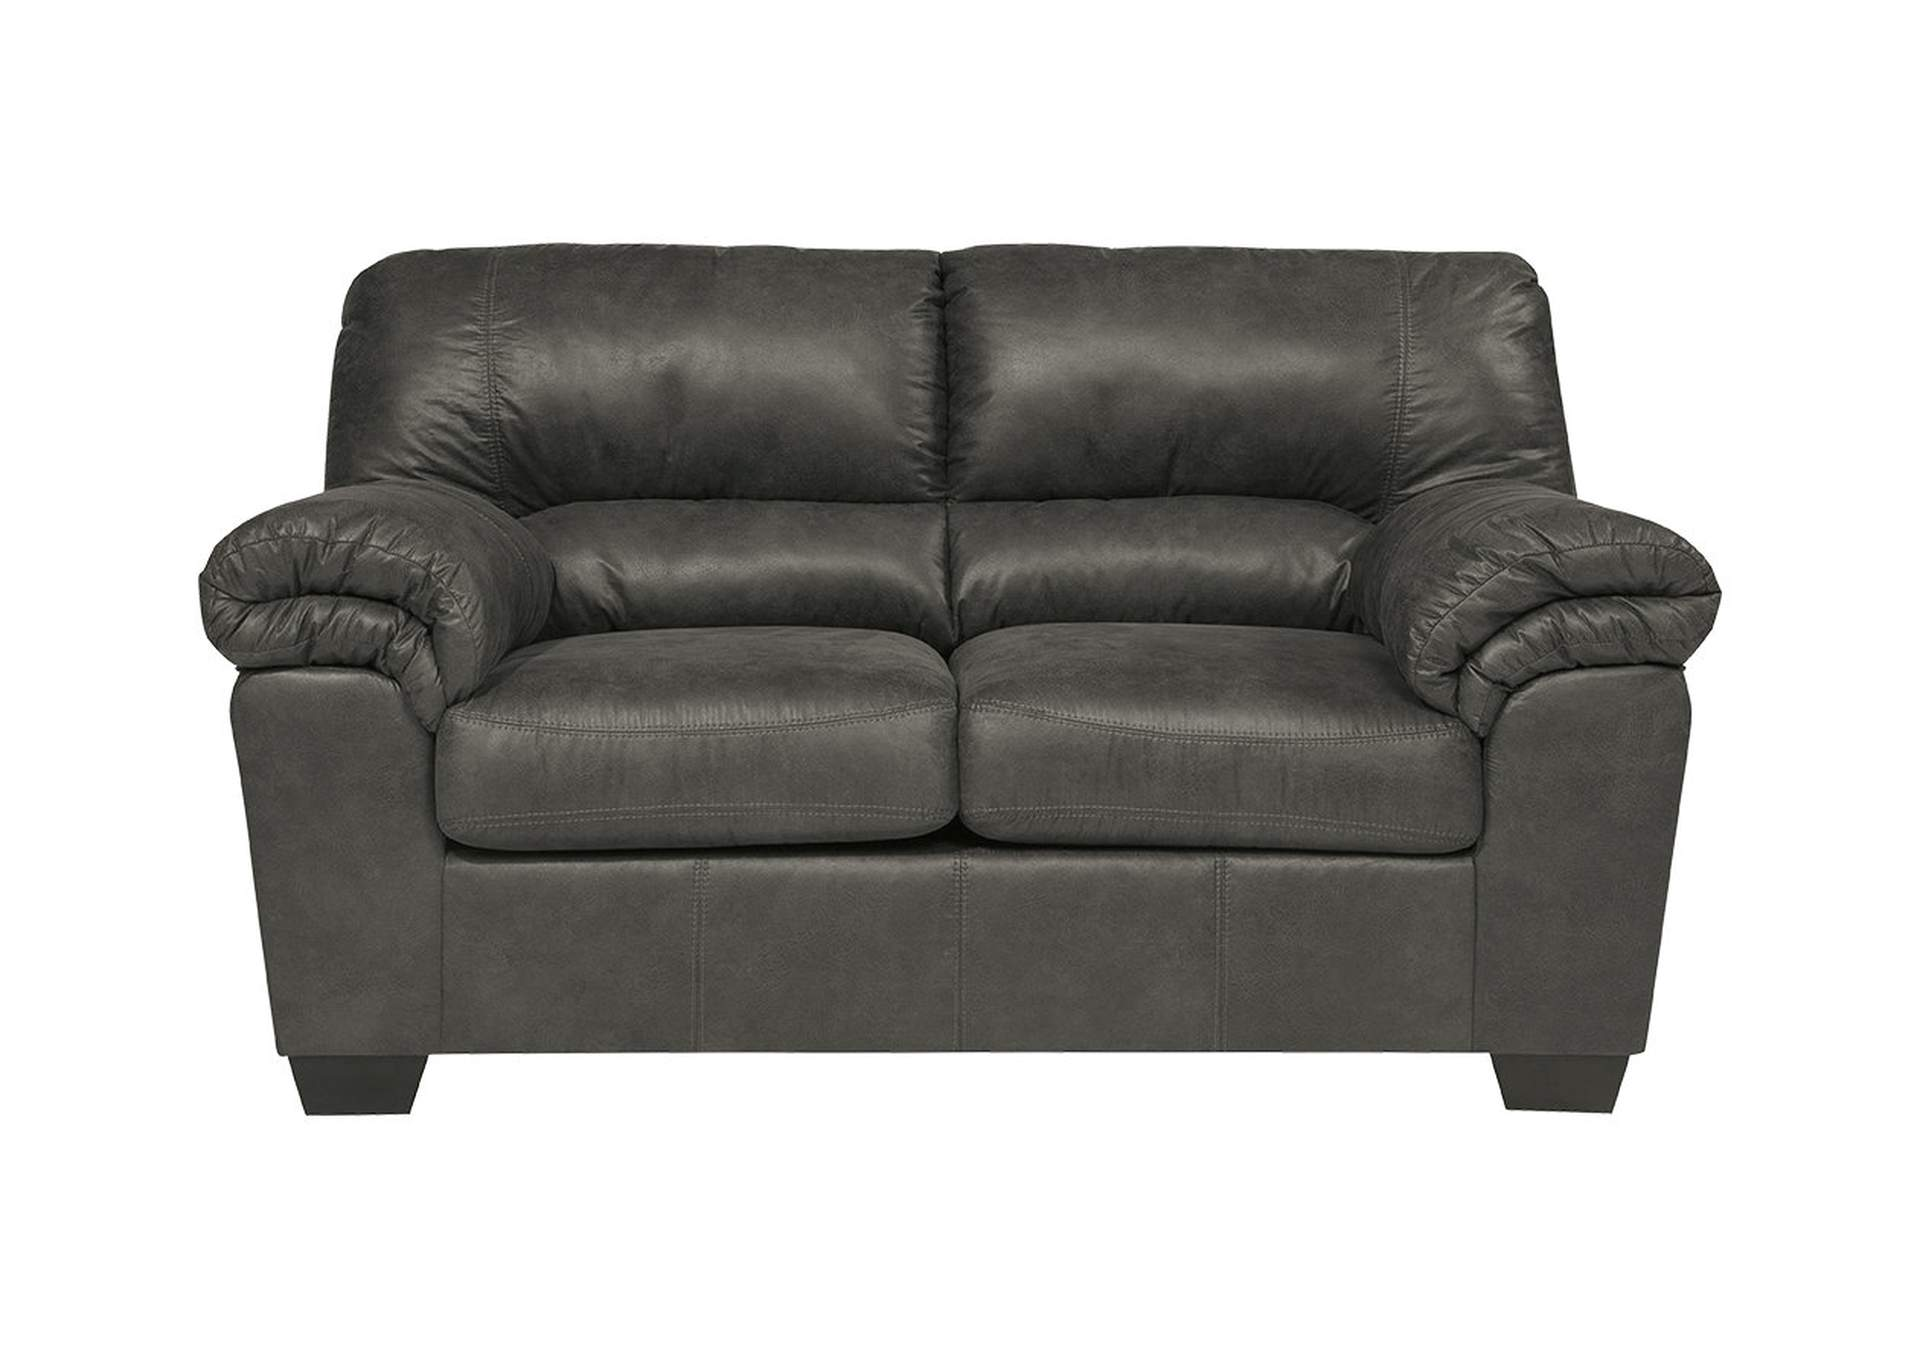 Bladen Slate Loveseat,Signature Design By Ashley